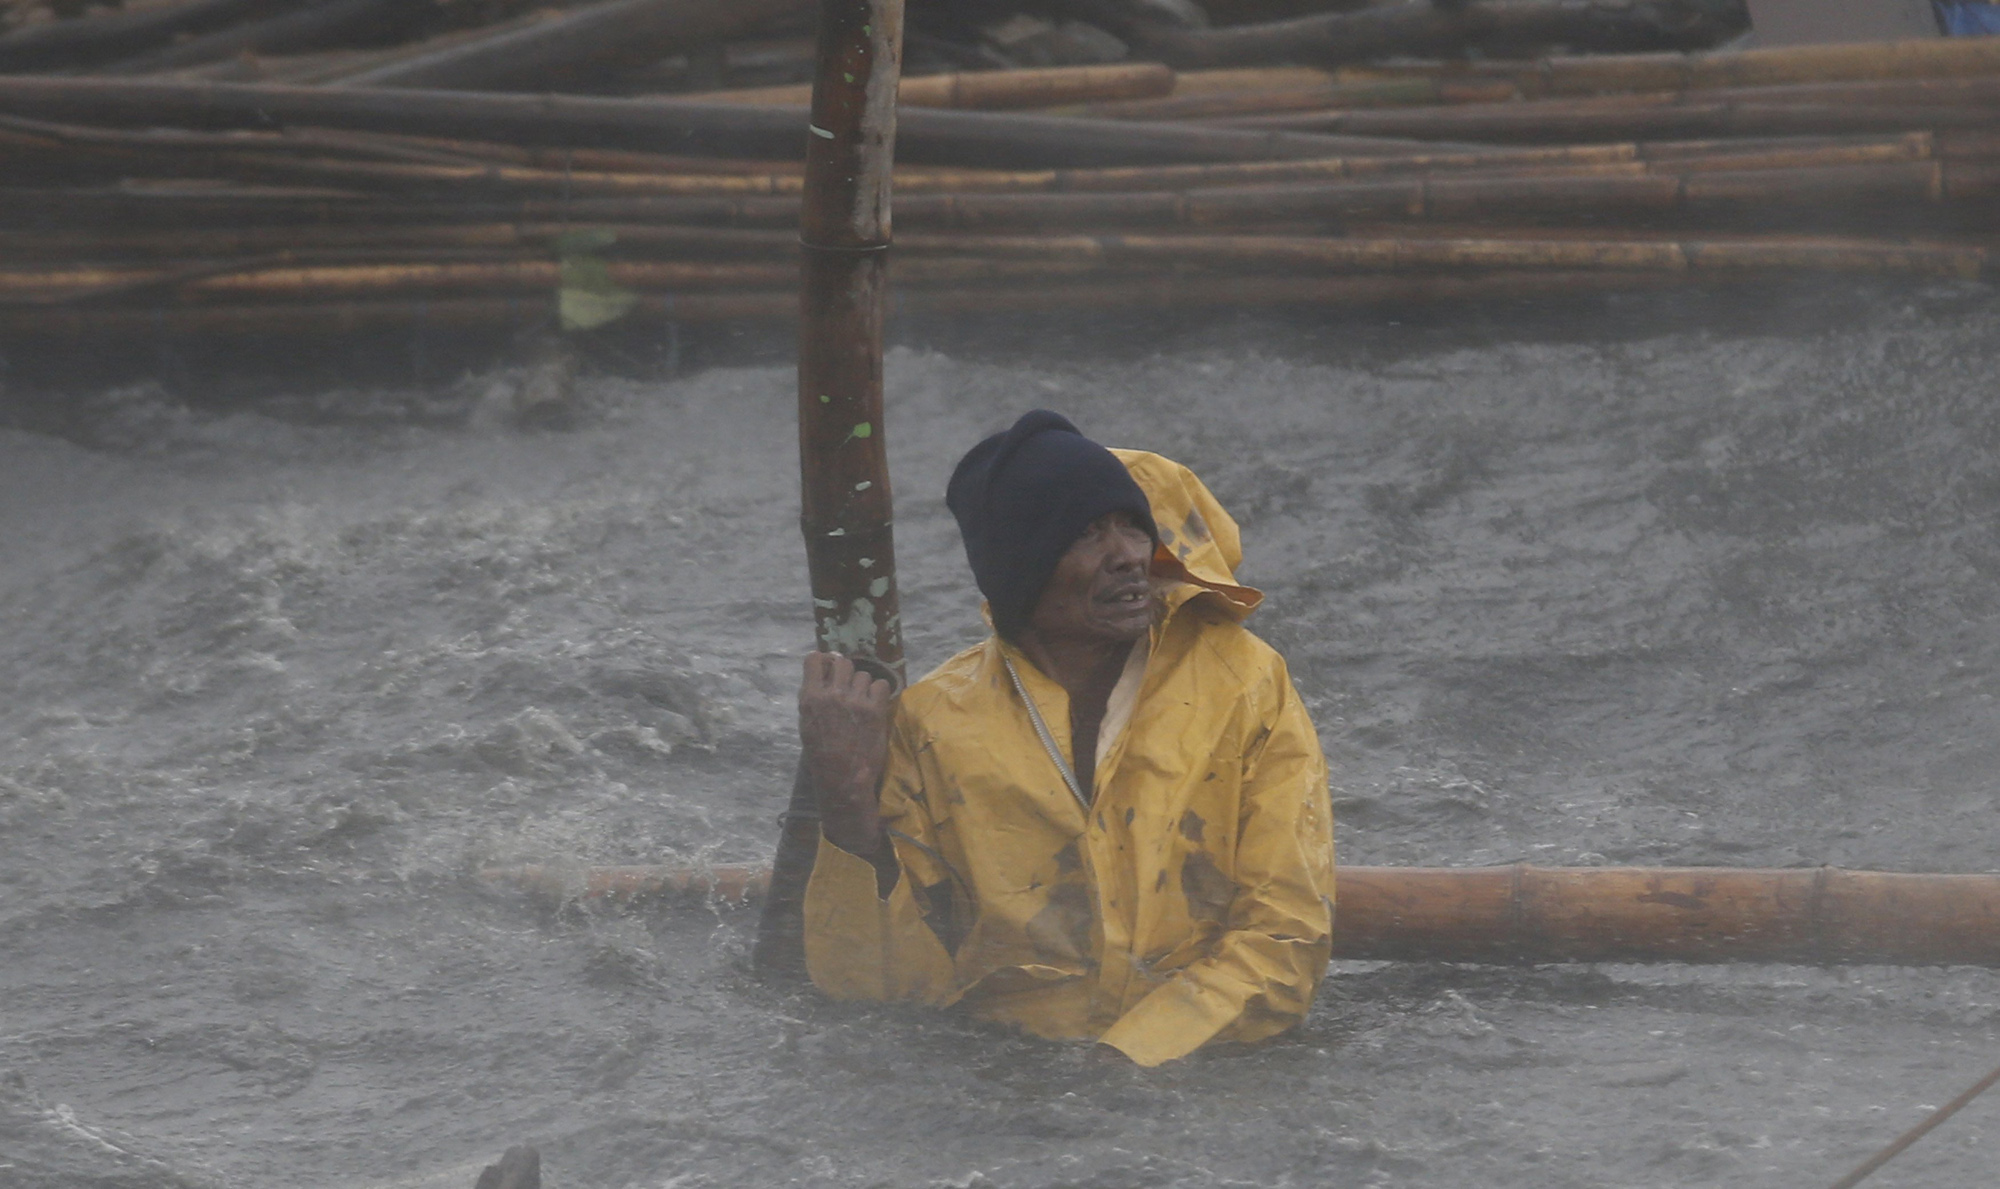 A fisherman secures his fishpen from strong winds and rain brought by Typhoon Rammasun as it hit the coastal town of Bacoor, Cavite southwest of Manila, July 16, 2014.